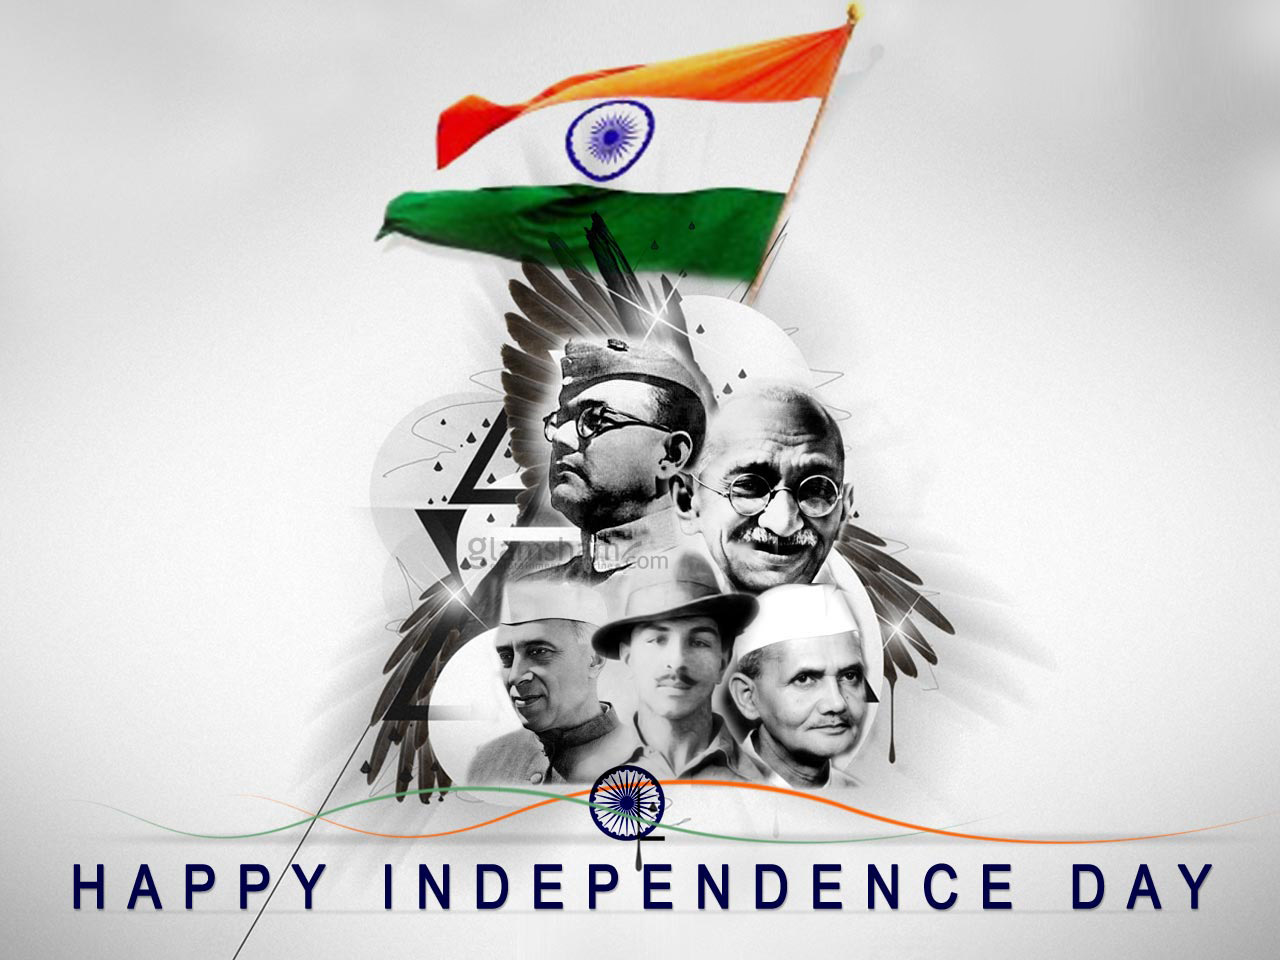 Happy 15th August Indian Independence Day Images HD Wallpapers for free download